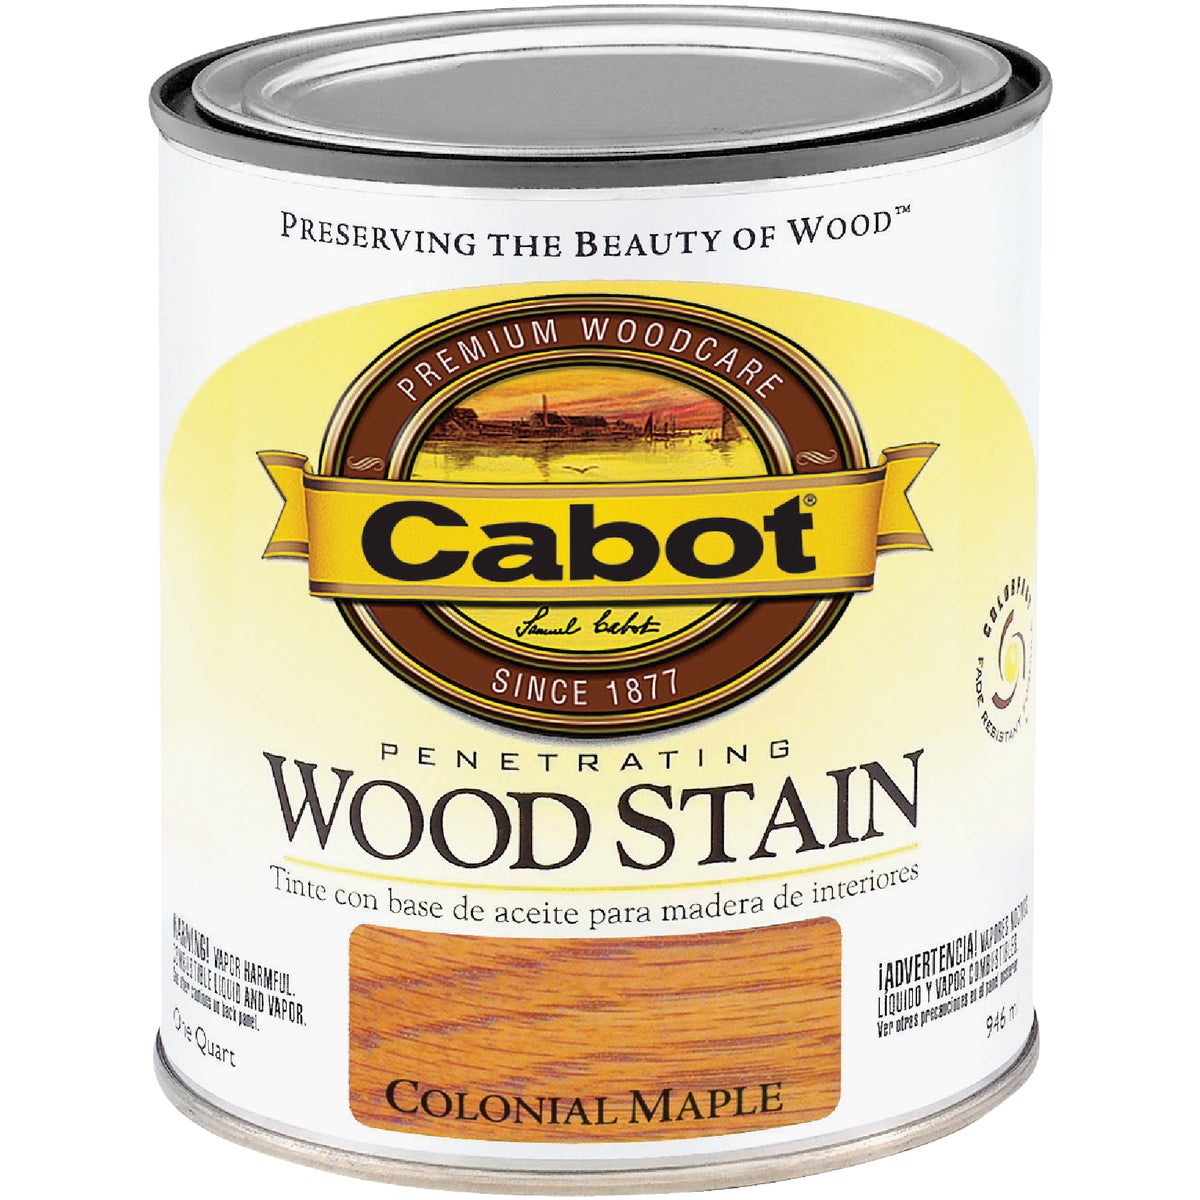 INT COL MAPLE WOOD STAIN - 144.0008123.005 by Valspar Corp